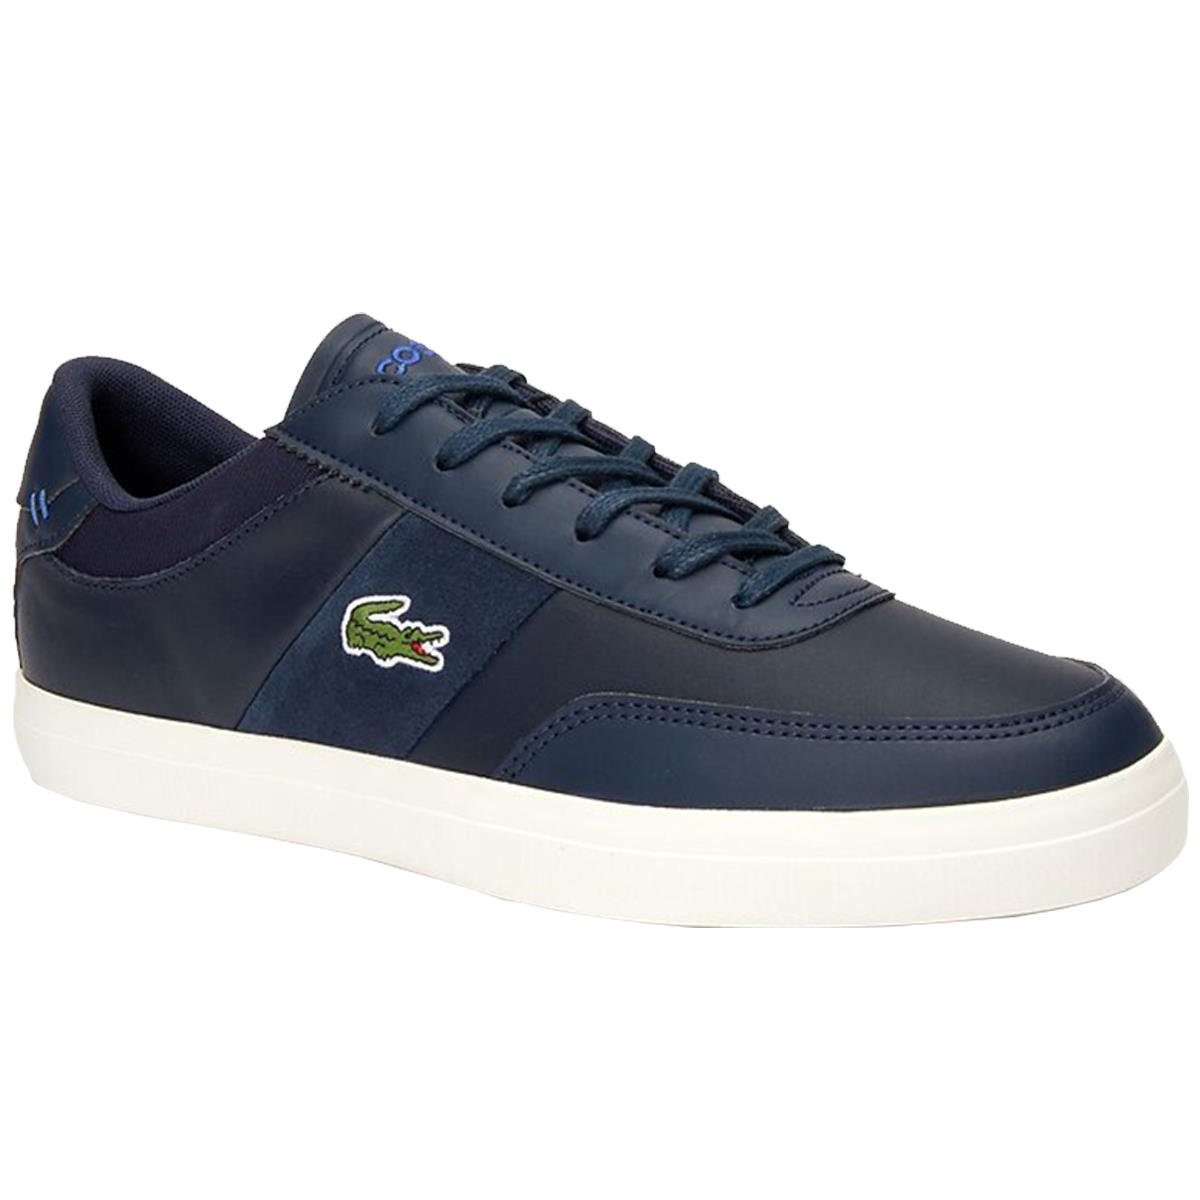 LACOSTE COURT MASTER TRAINERS MEN'S B